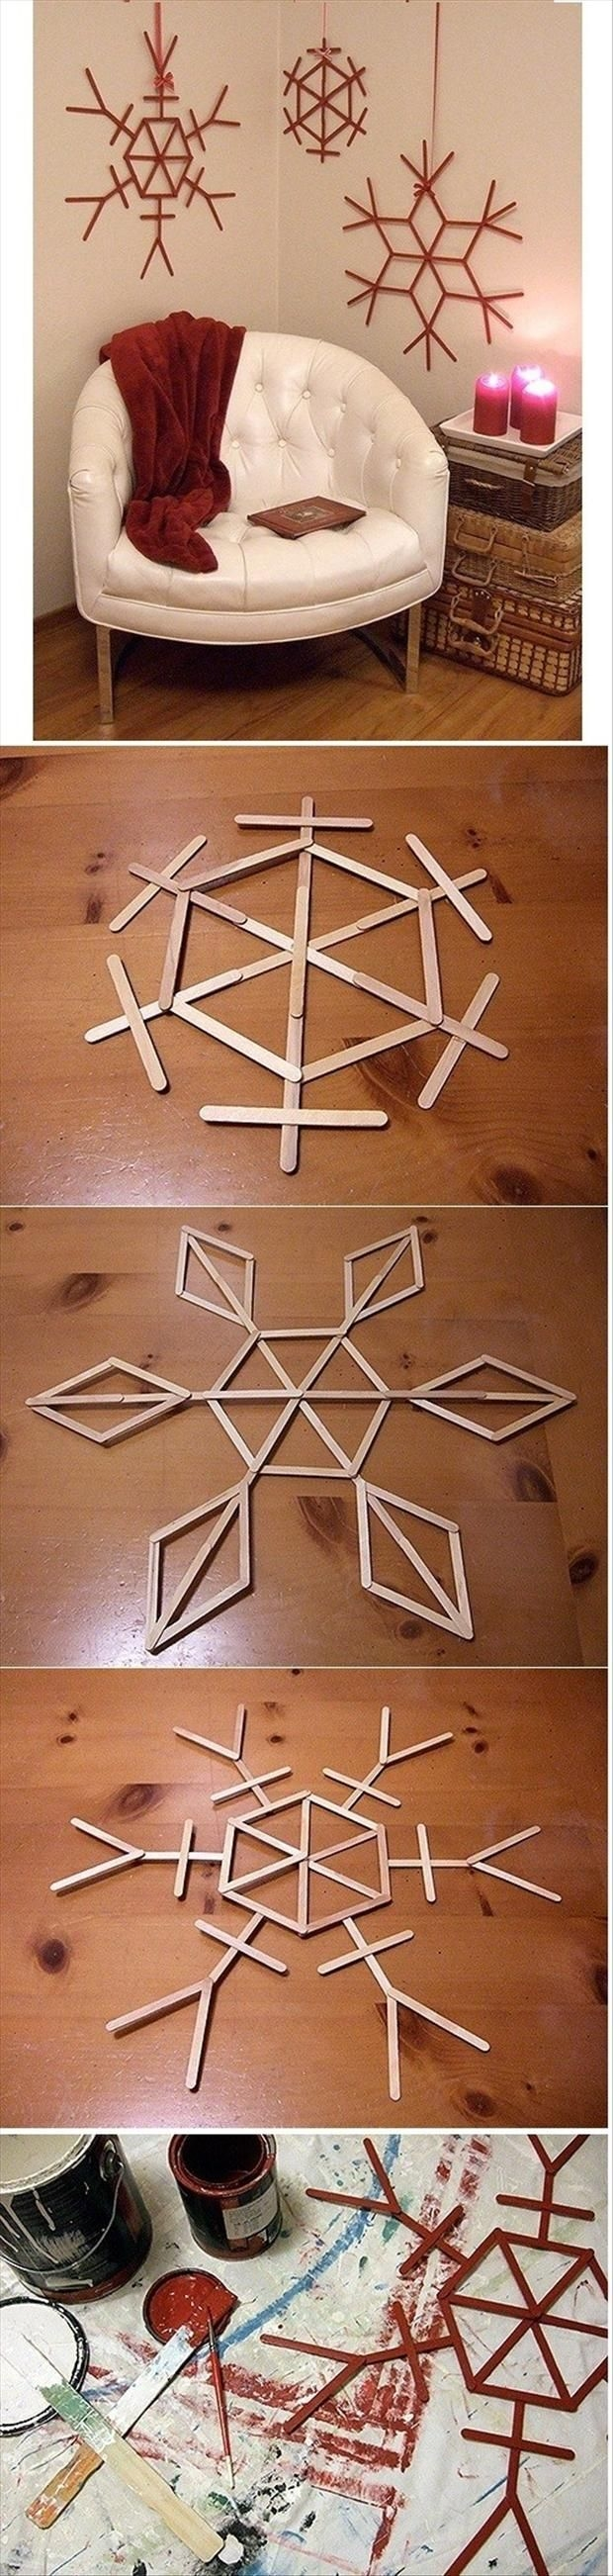 Christmas Craft Ideas With Popsicle Stick : Diy snowflake decor pictures photos and images for